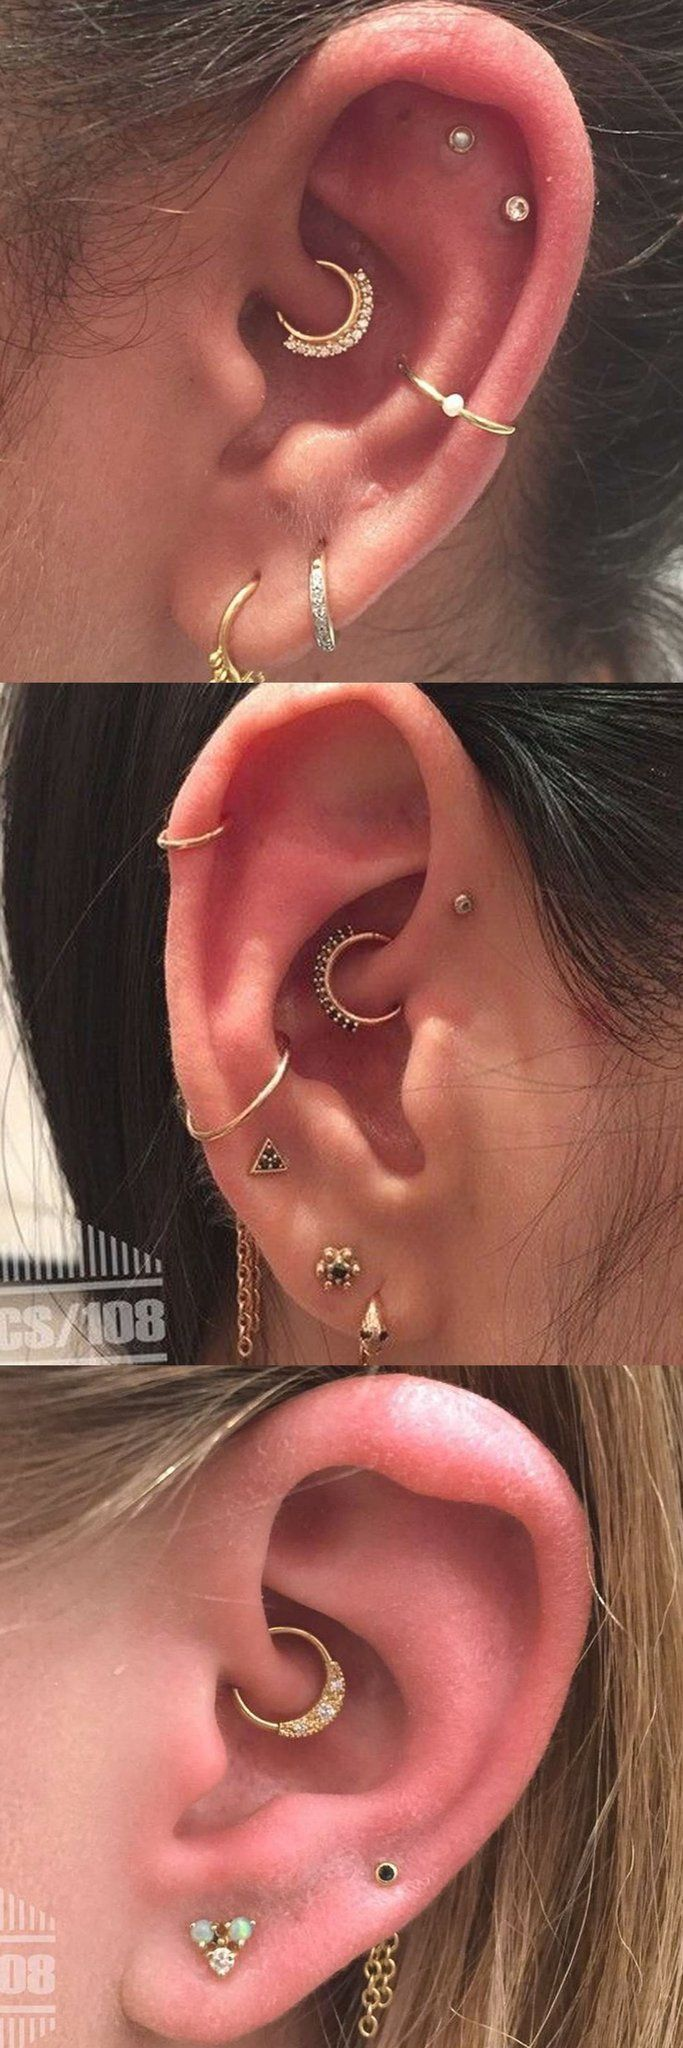 Delicate Ear Piercing Ideas Combinations - Rook Piercing Jewelry - Gold Cartilage Rings - Conch Hoop at MyBodiArt.com #Piercings